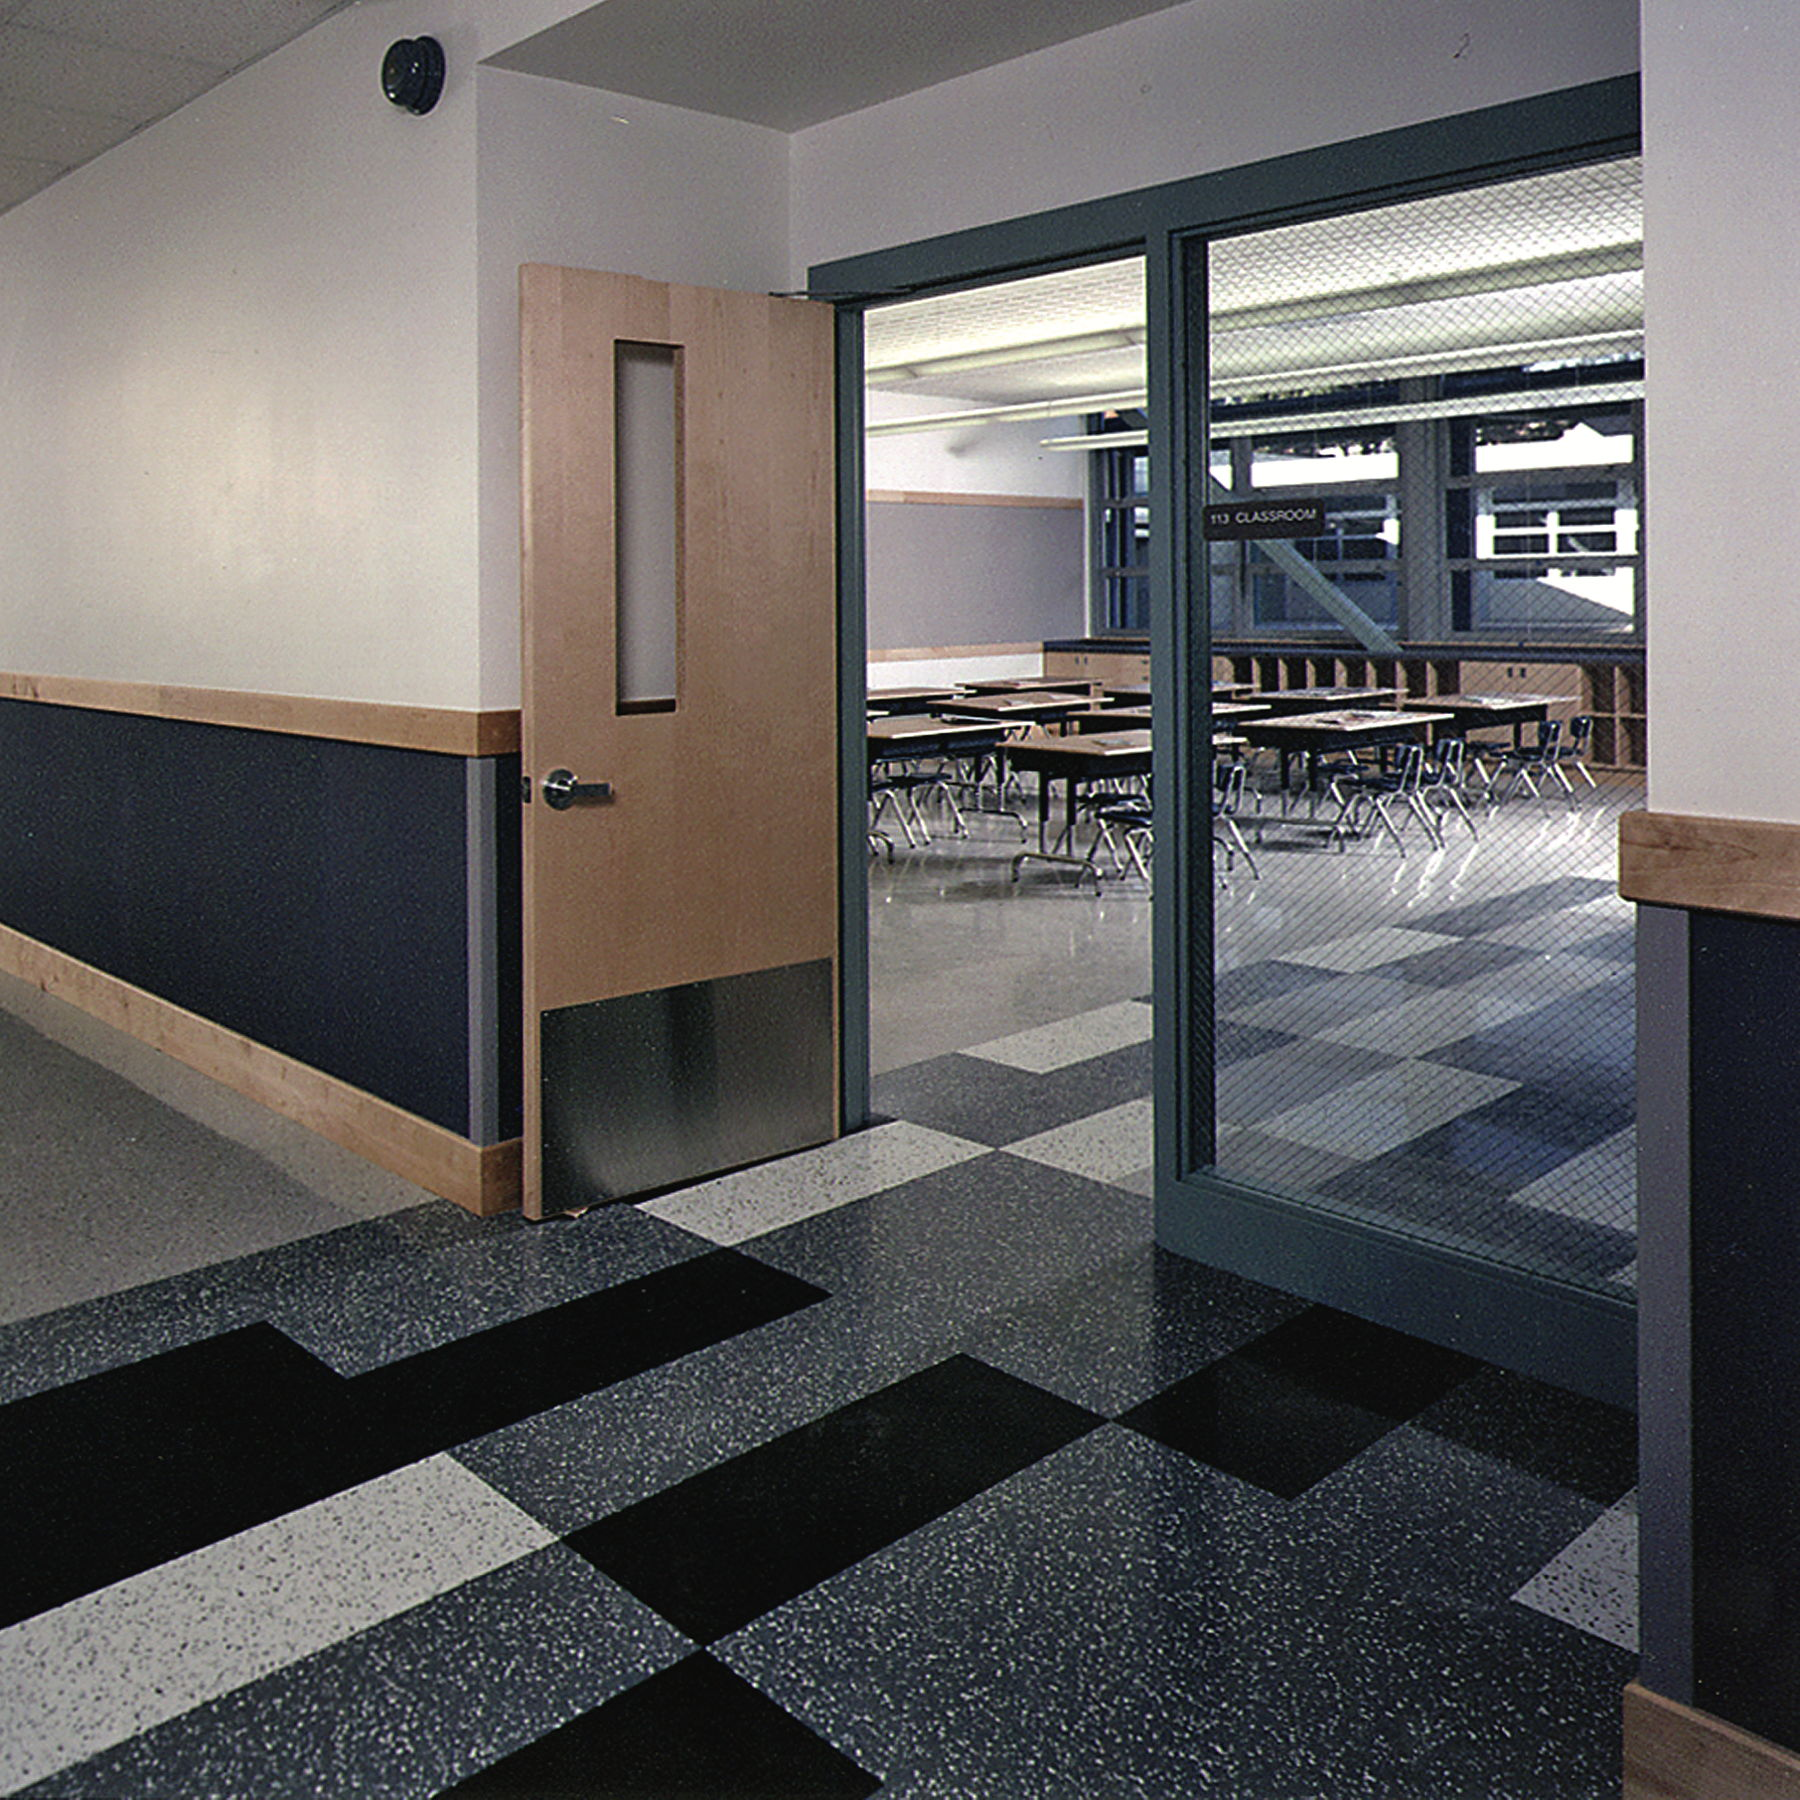 Classroom entry